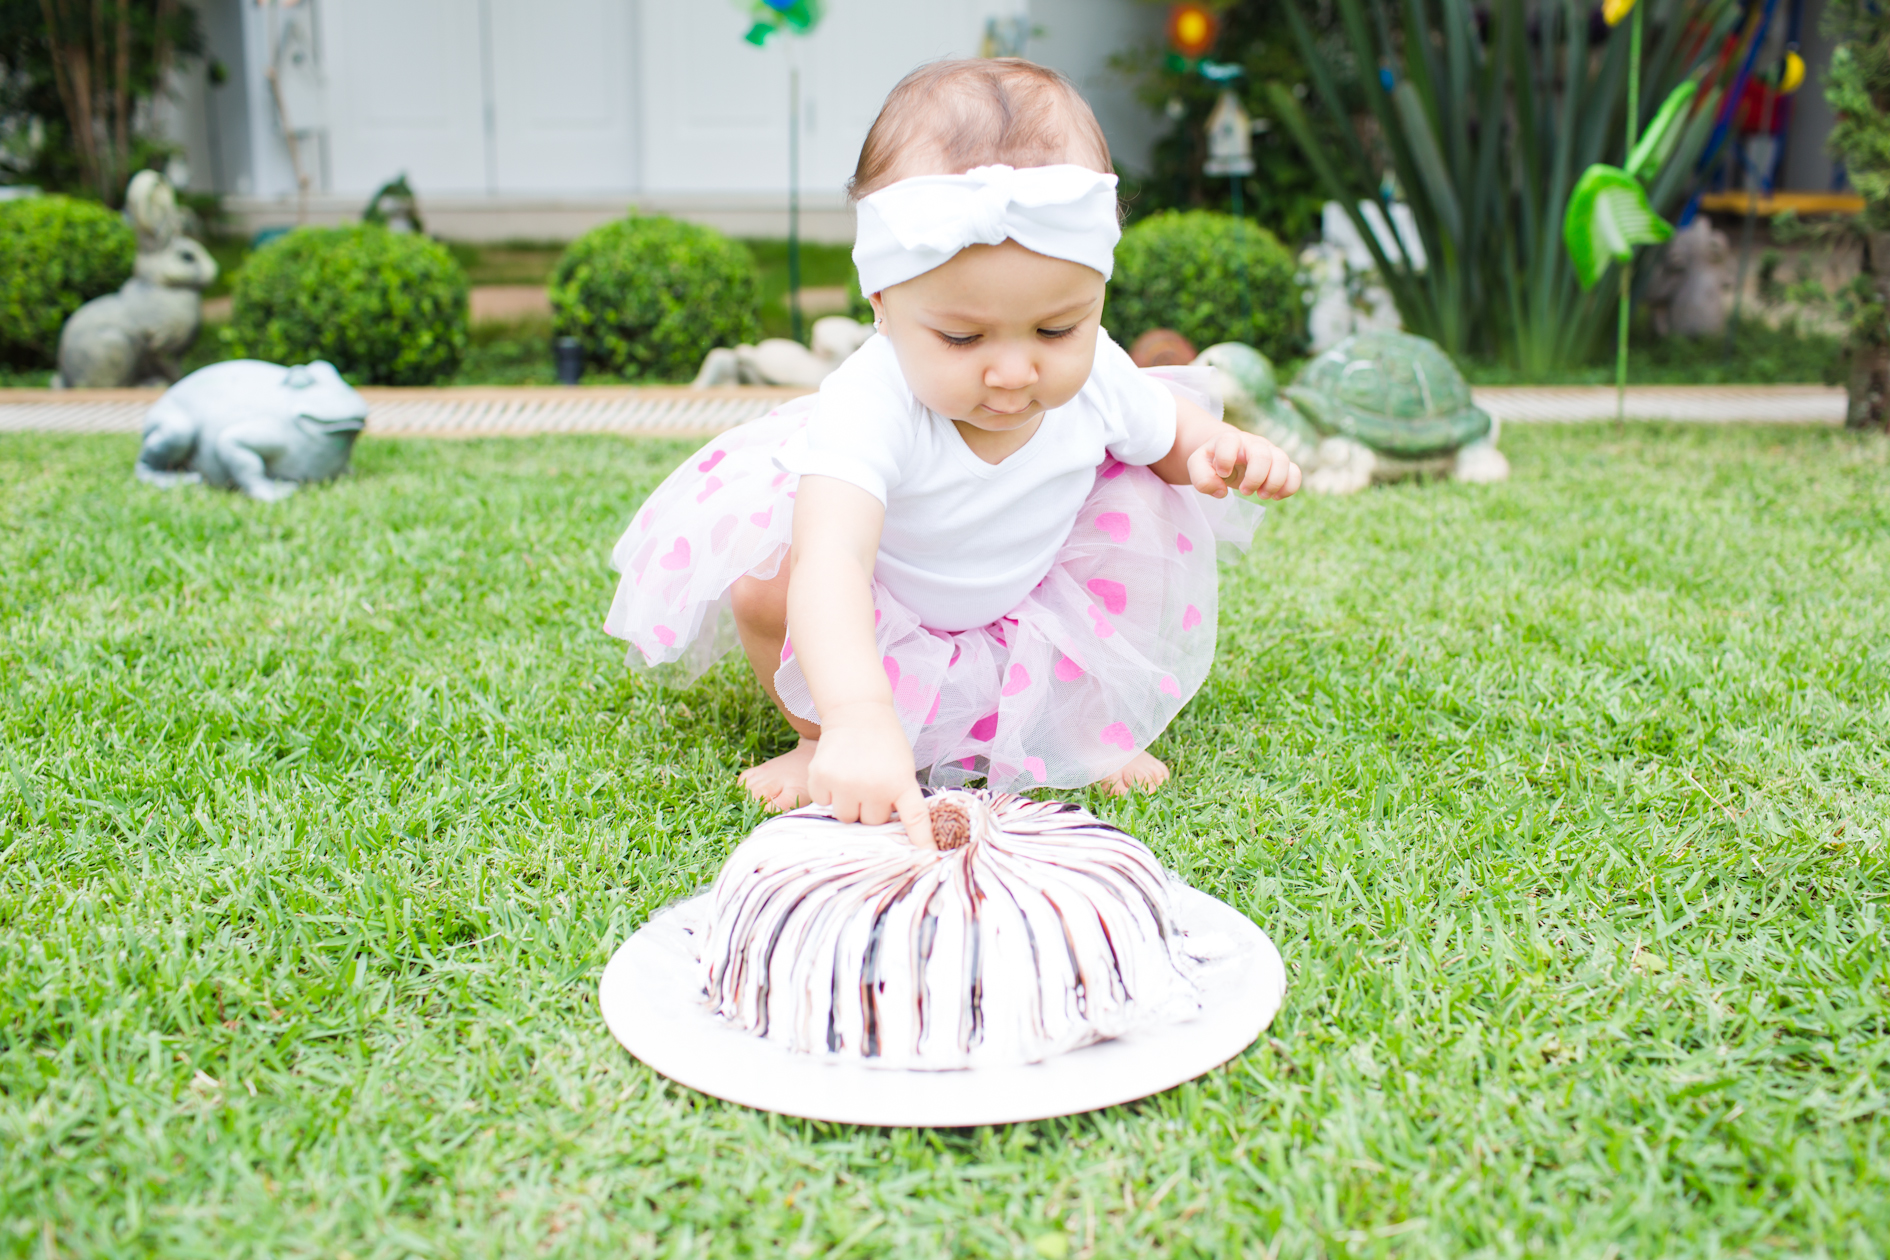 Laura_smash the cake-1- KS1A2921.jpg